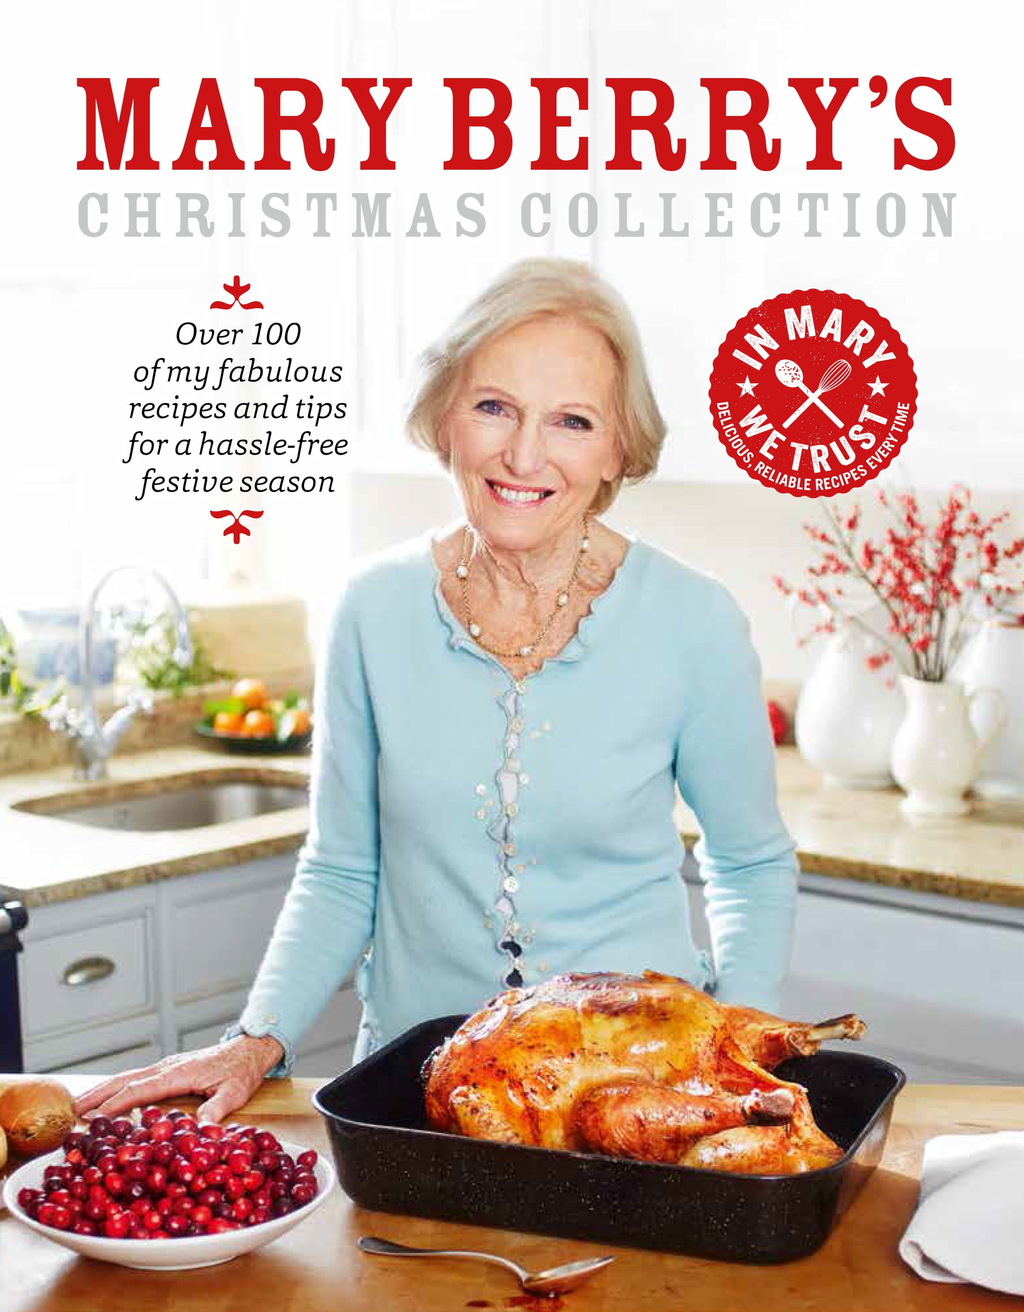 Mary Berry's Christmas Collection